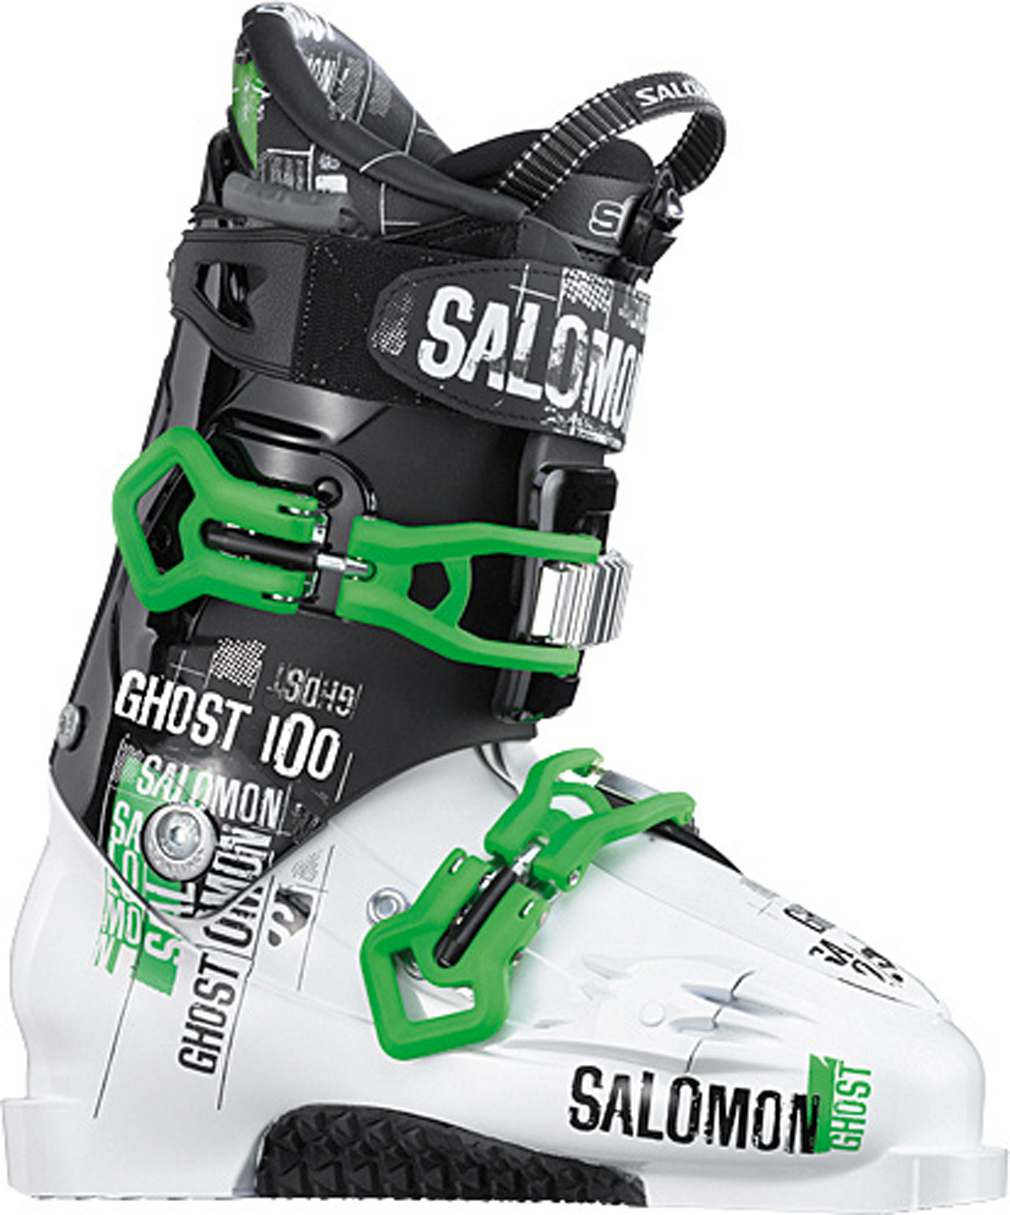 Ski Key Features of the Salomon Ghost 100 Ski Boots: World cup advanced shell technology Double canting Shock absorbing footboard My Custom Fit Pro Sensitive liner - $291.95